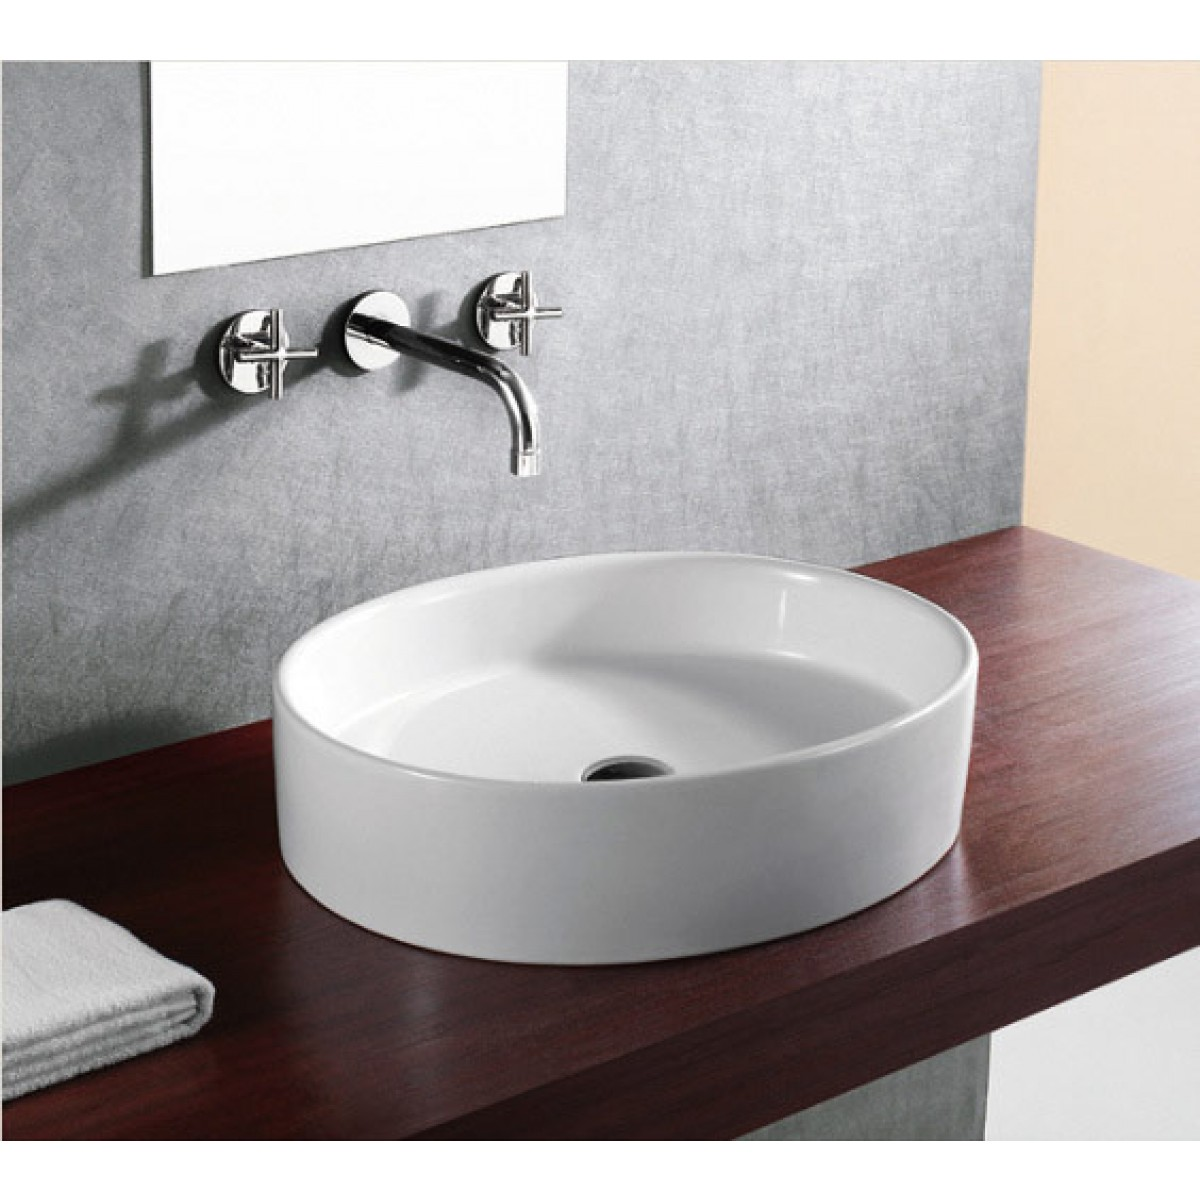 European Style Oval Shape Porcelain Ceramic Bathroom Vessel Sink   22 X 14  X 5  Awesome Design